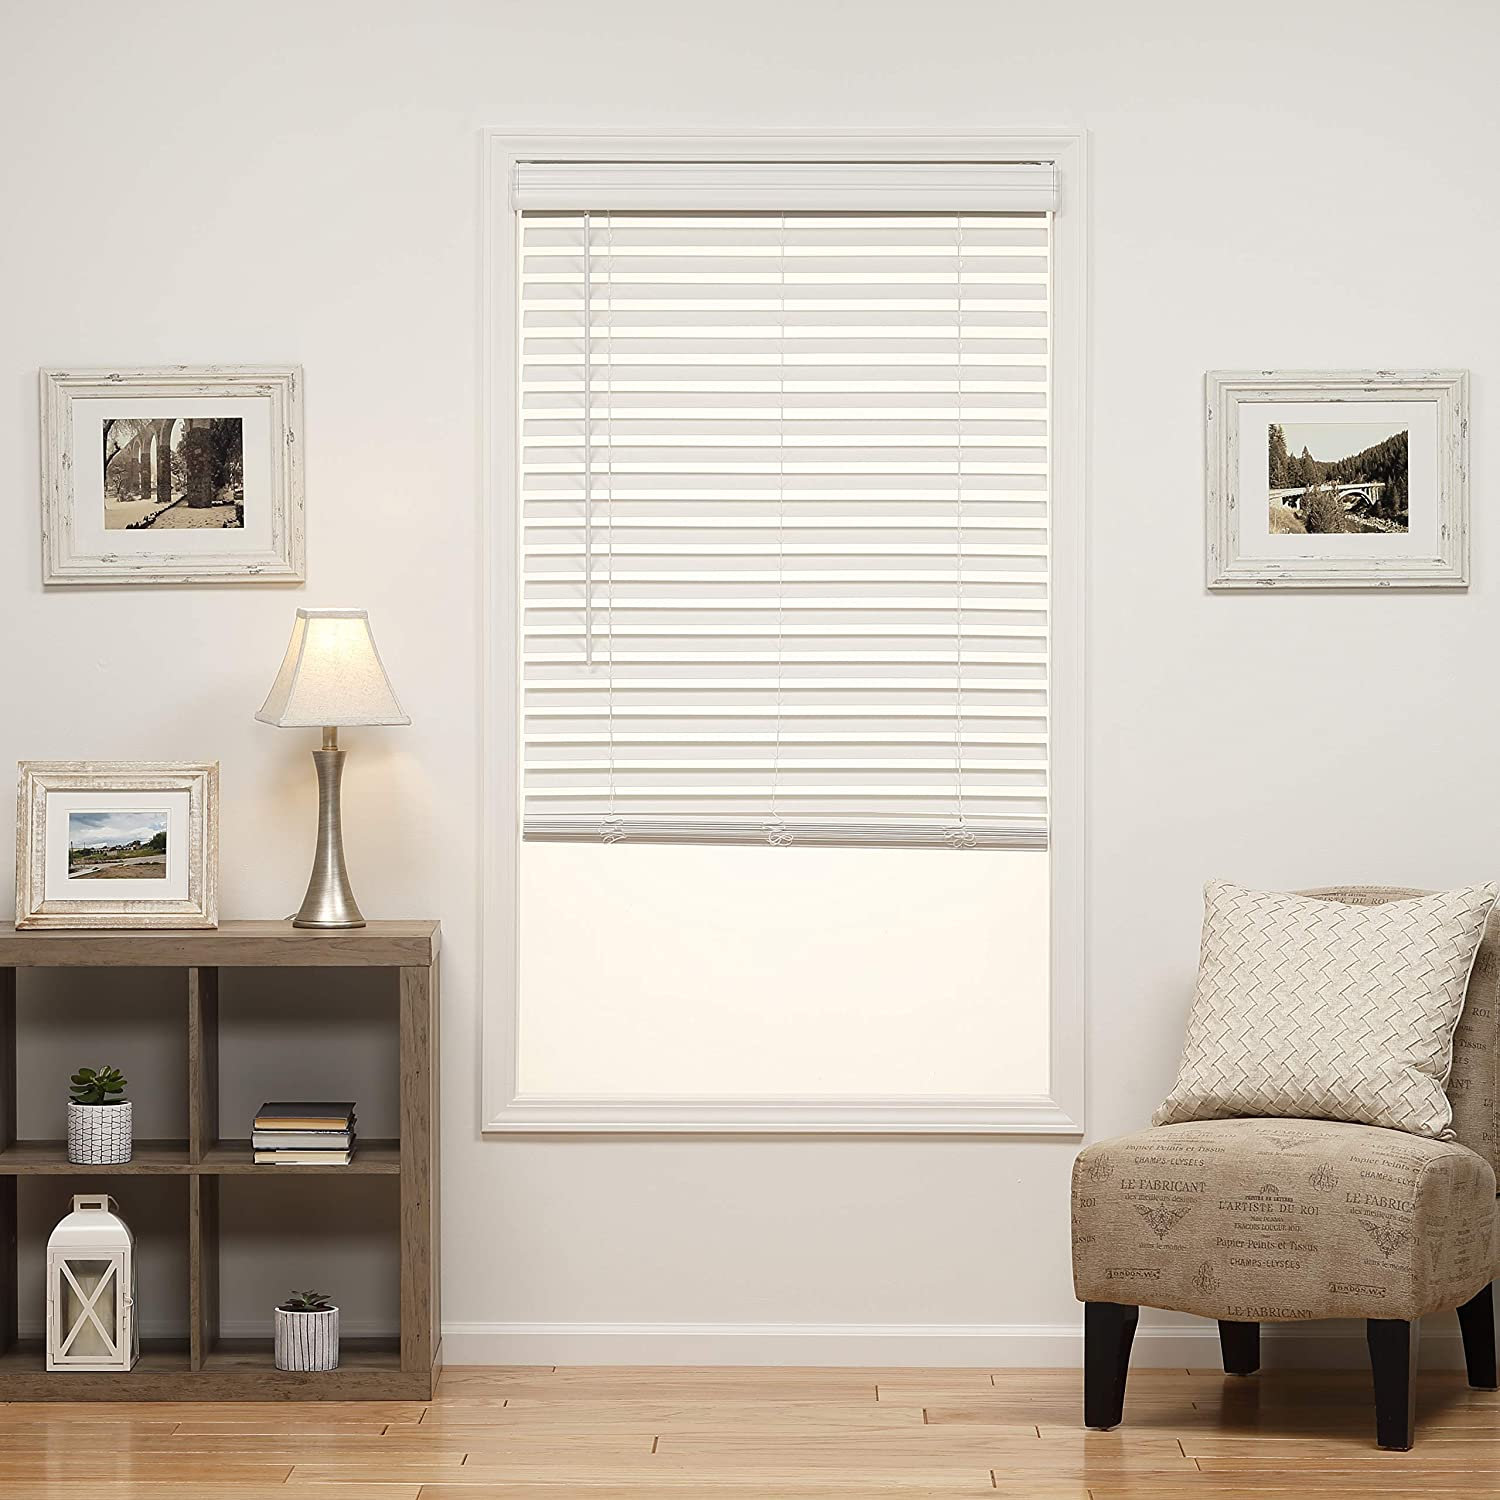 DEZ Furnishings QJWT230640 2 in. Cordless Faux Wood Blind, 23W x 64L Inches, White